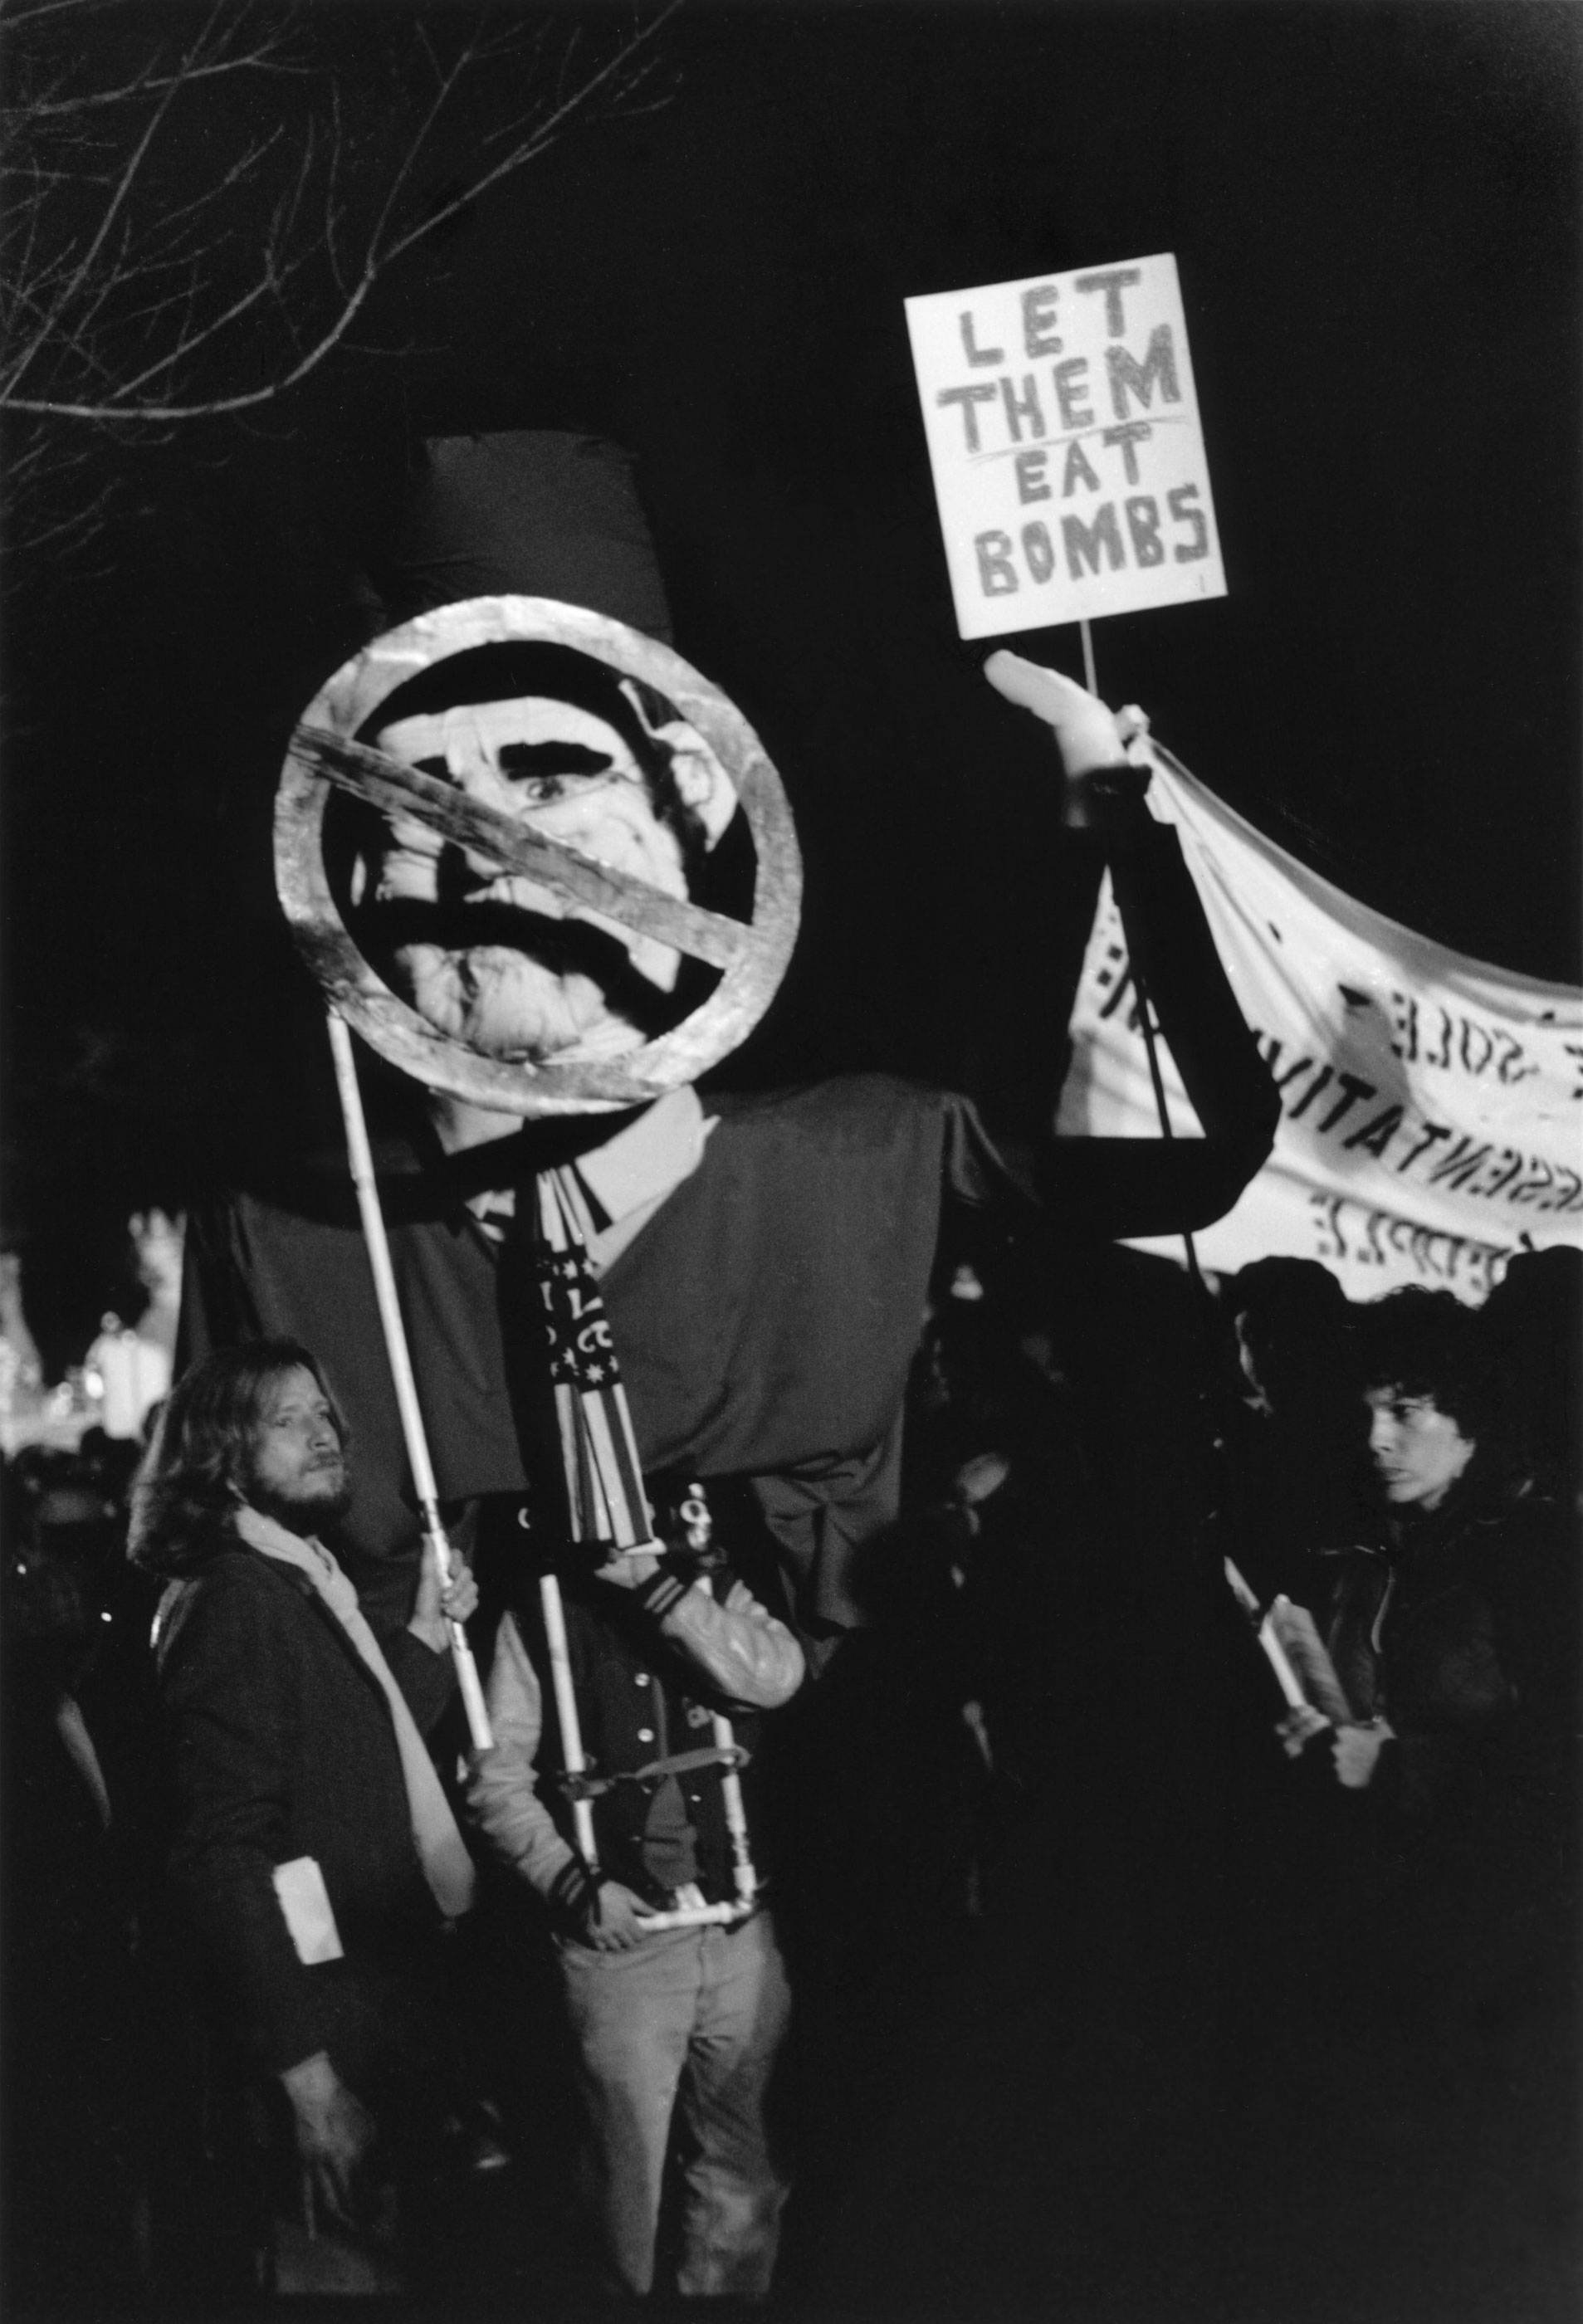 March 3, 1983 Protest